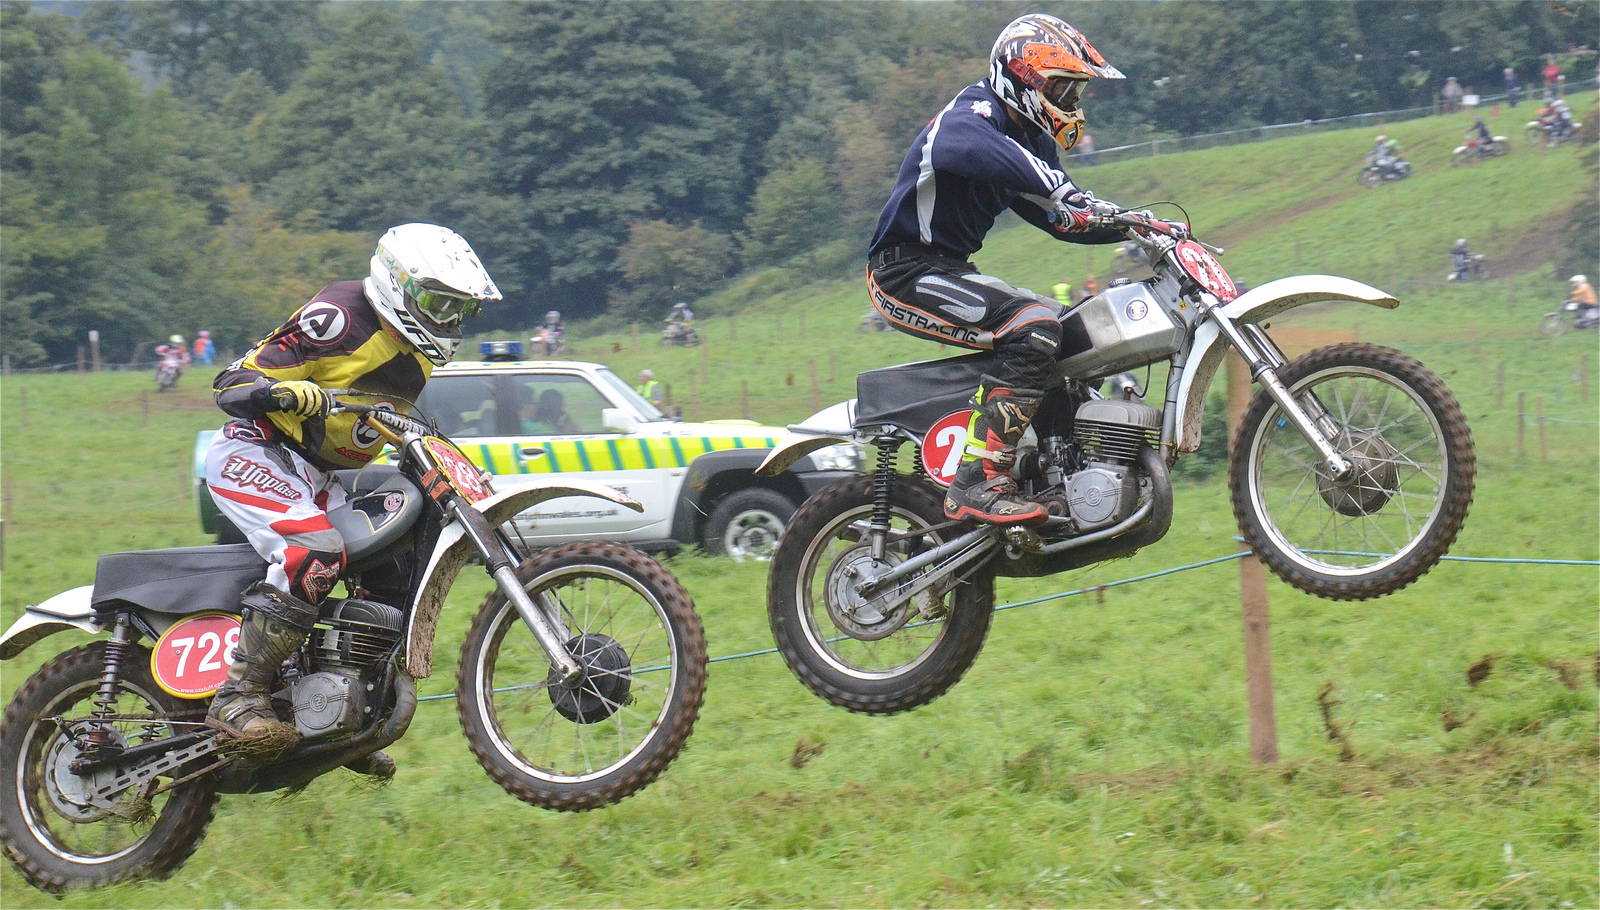 Llanthony Classic Scramble Photos September 2015 classicdirtbikerider.com..6